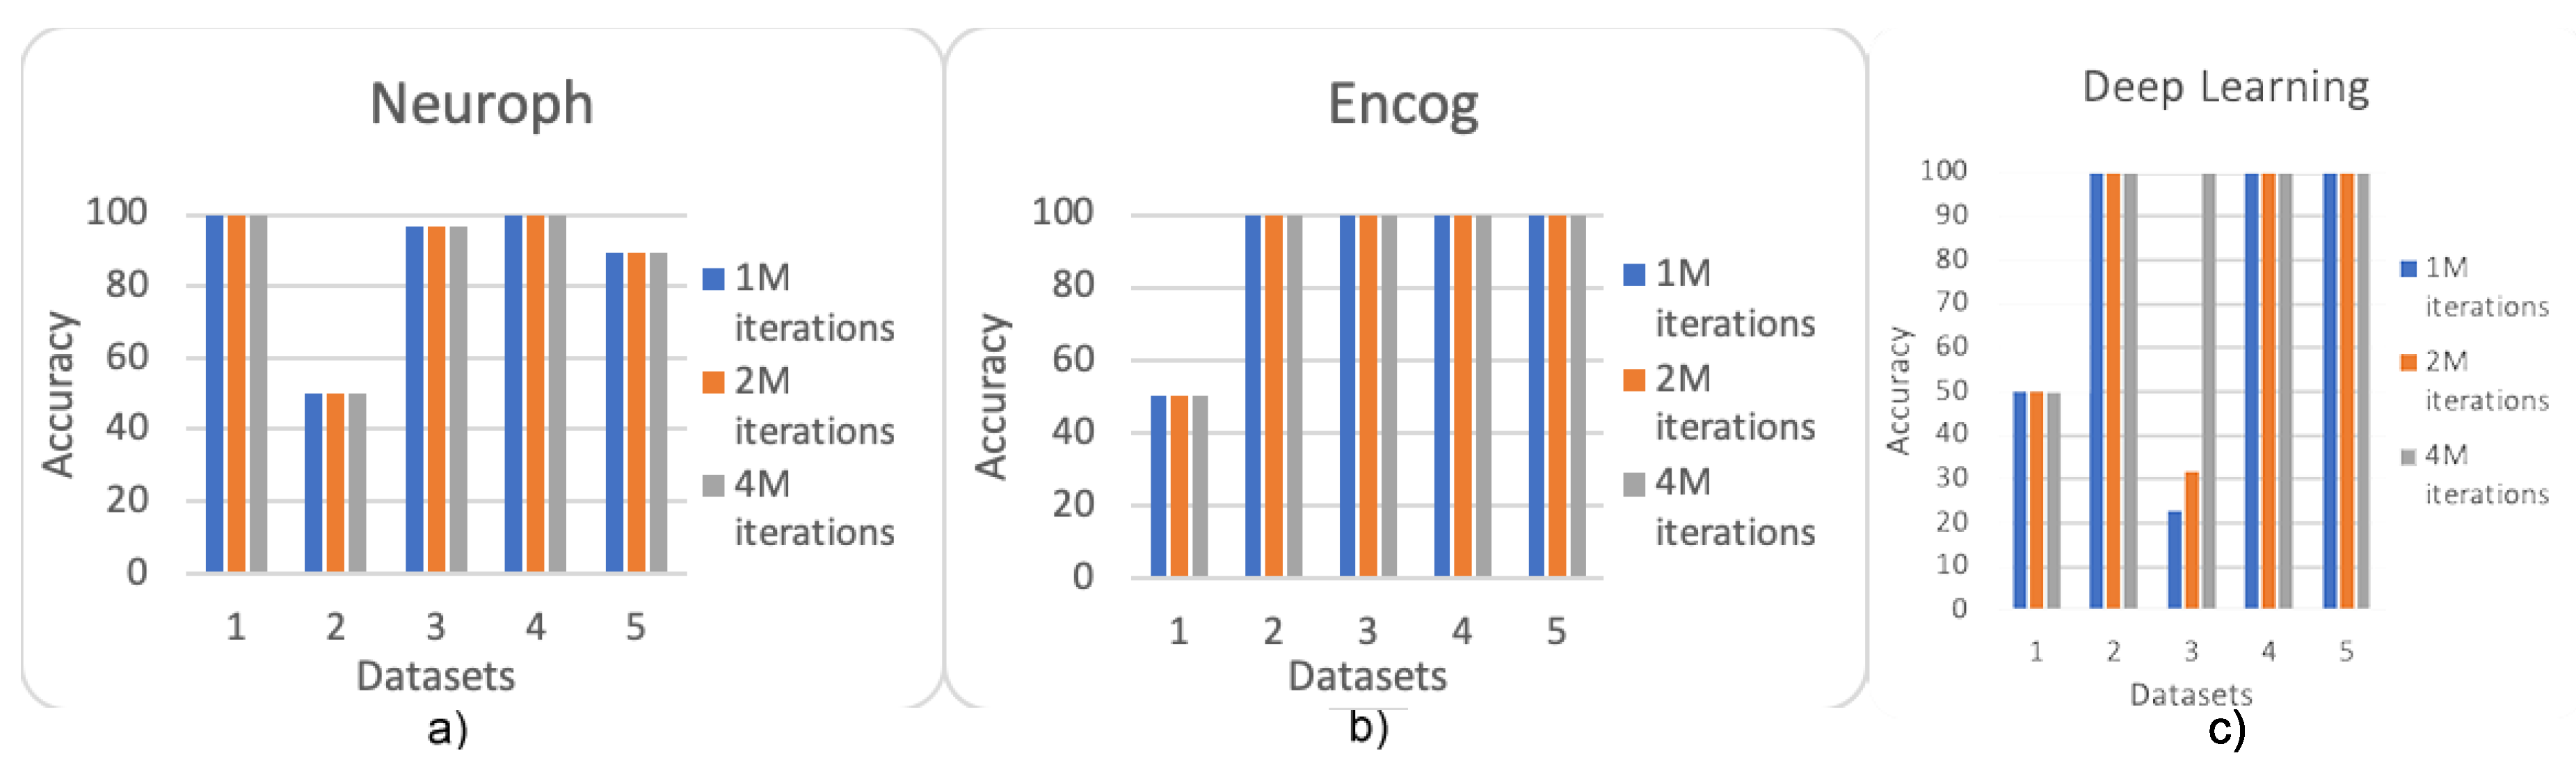 Electronics Free Full Text Recognition Of Activities Of Daily Living And Environments Using Acoustic Sensors Embedded On Mobile Devices Html